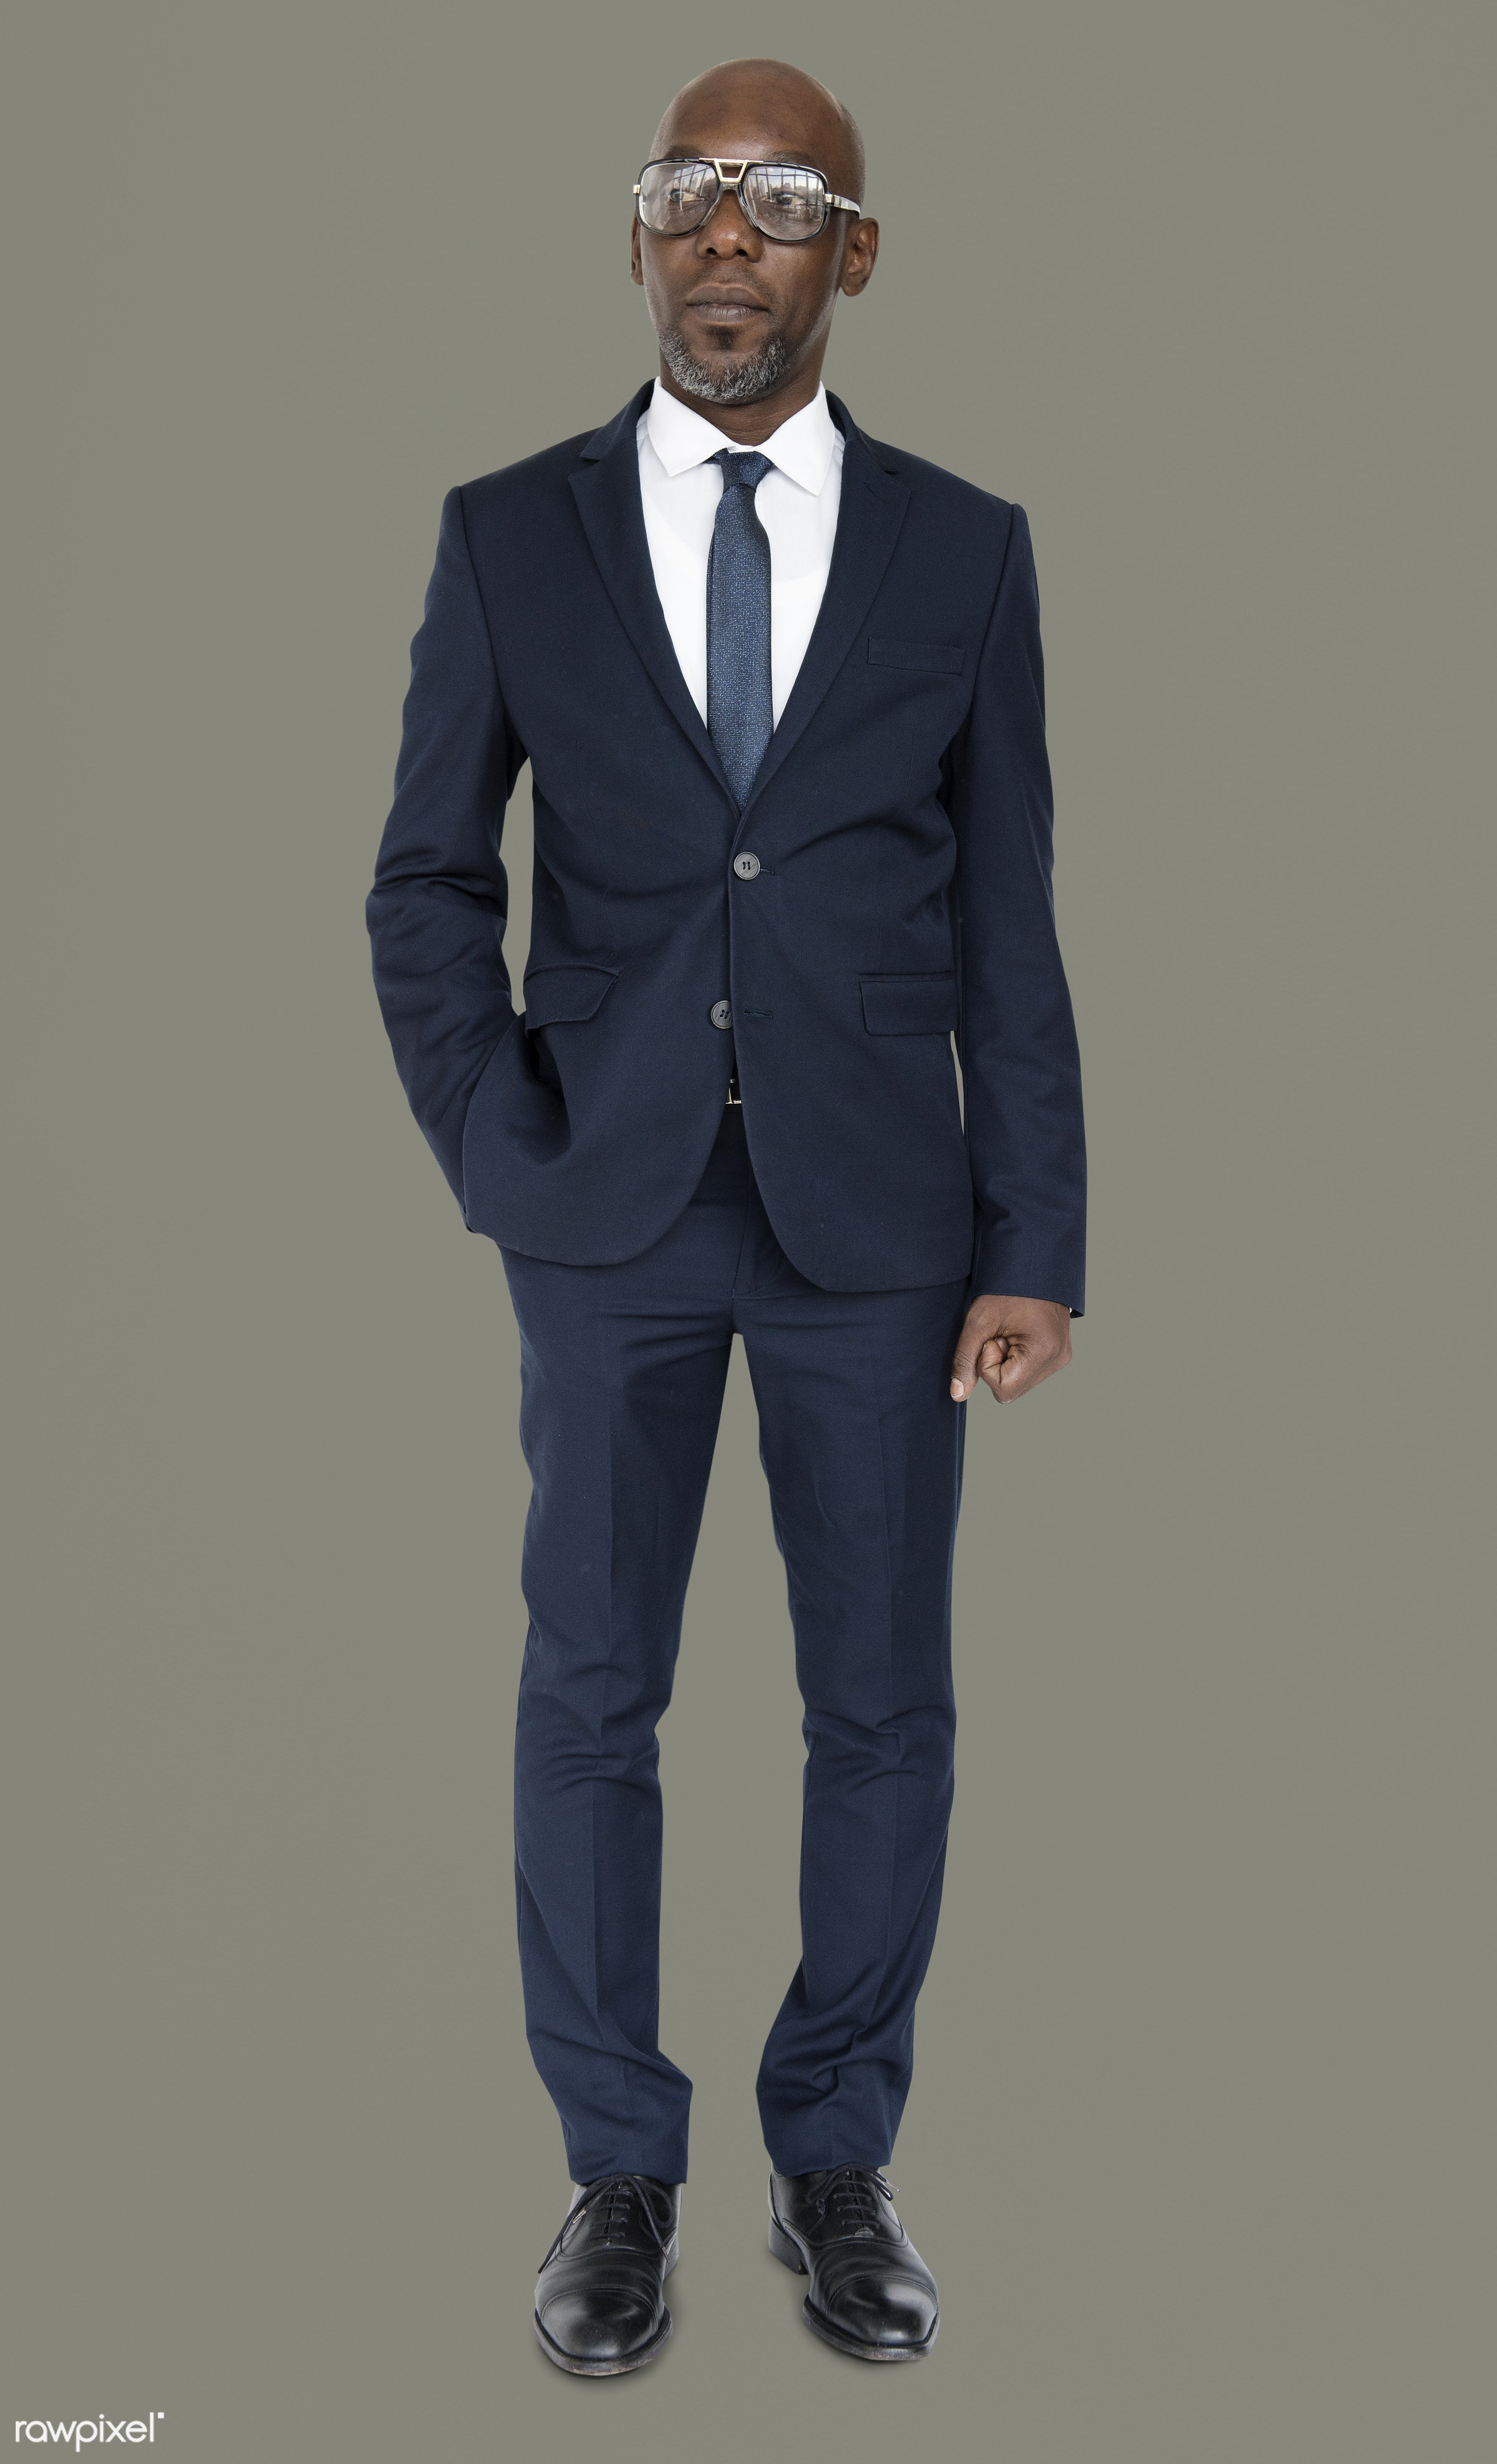 expression, person, full length, white collar worker, people, business, businessman, worker, working, man, black, isolated,...